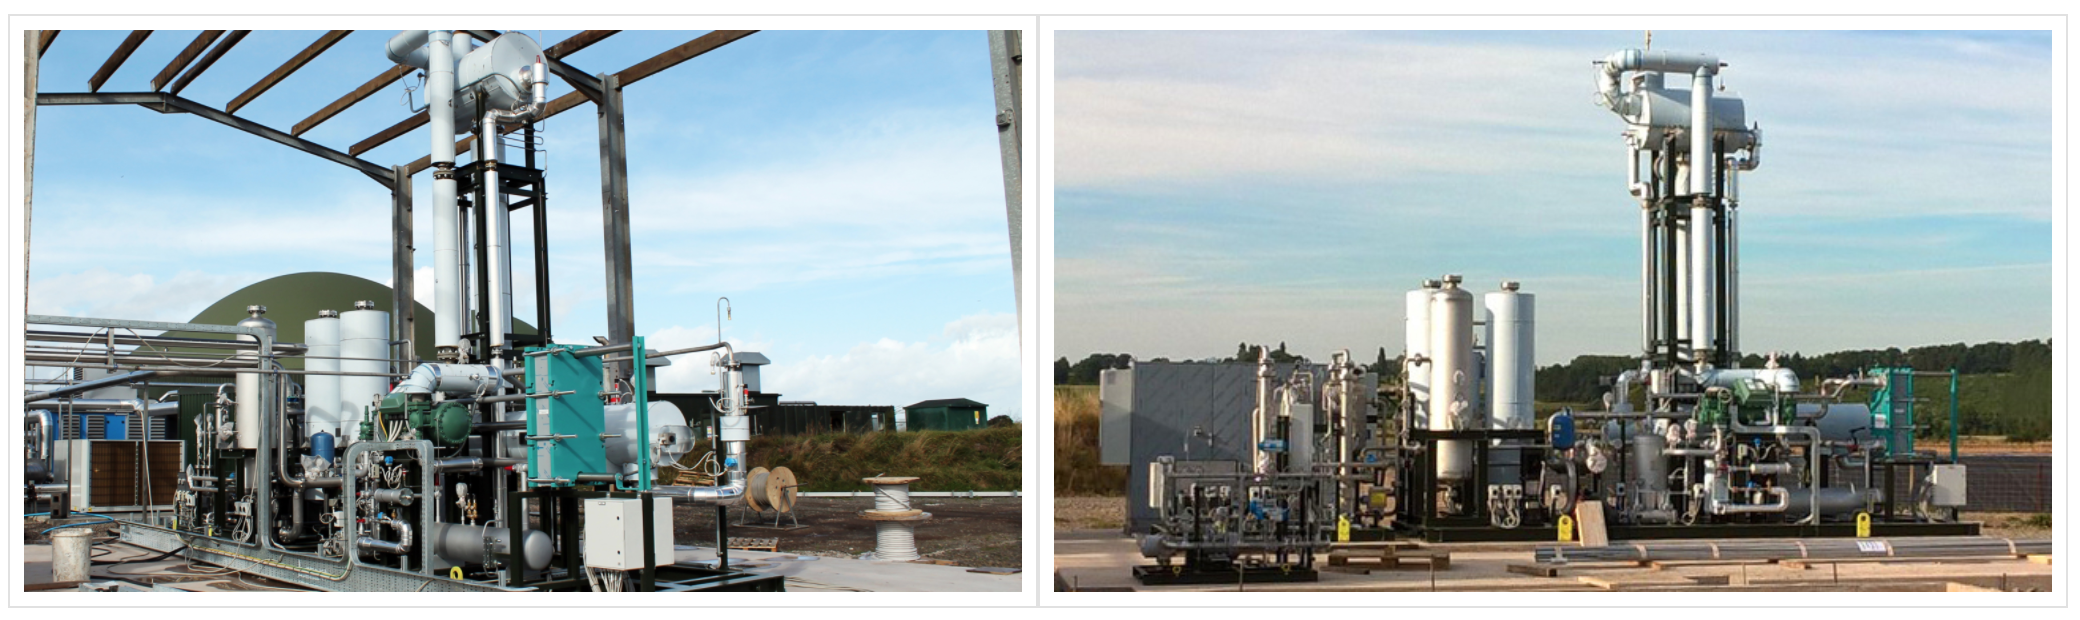 BRIGHT BIOMETHANE - CO2 Recovery